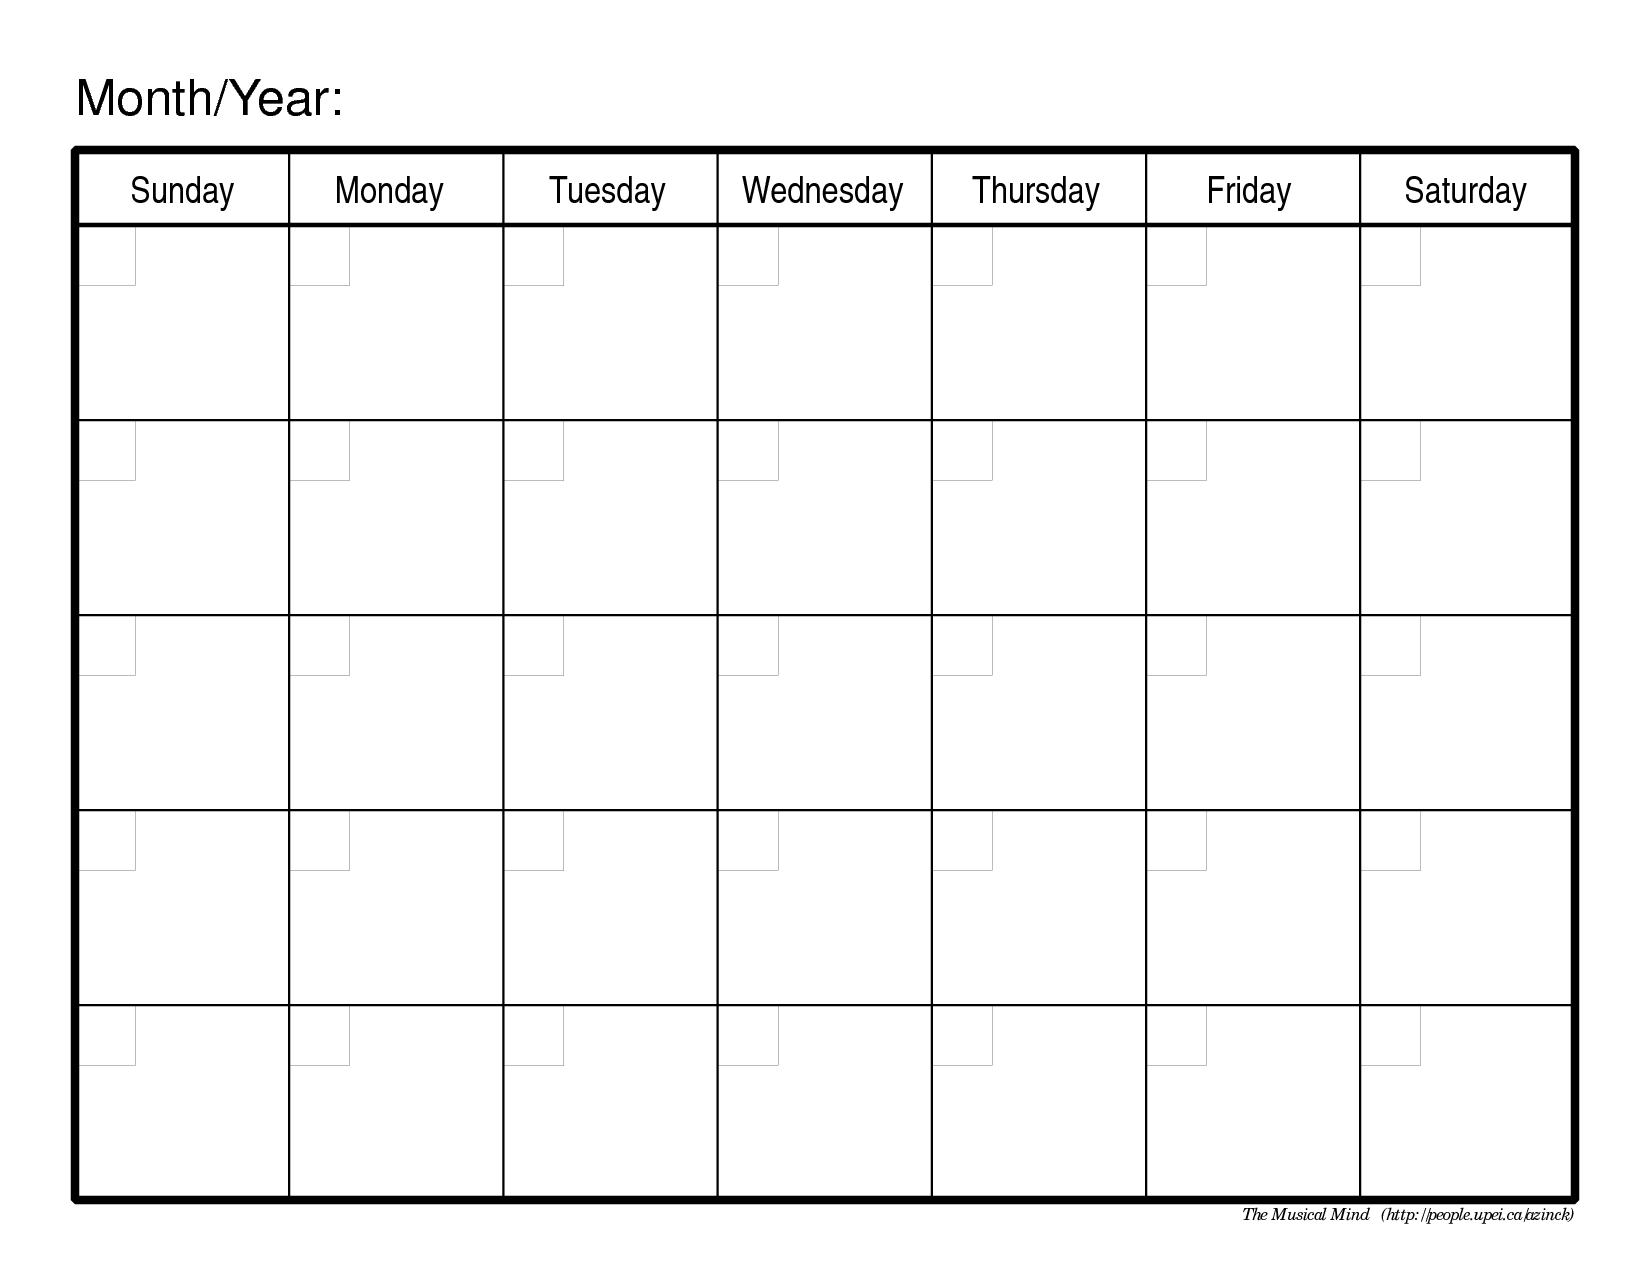 Monthly Calendar Template | Organizing | Monthly Calendar Template inside Blank Calendar To Fill In Free